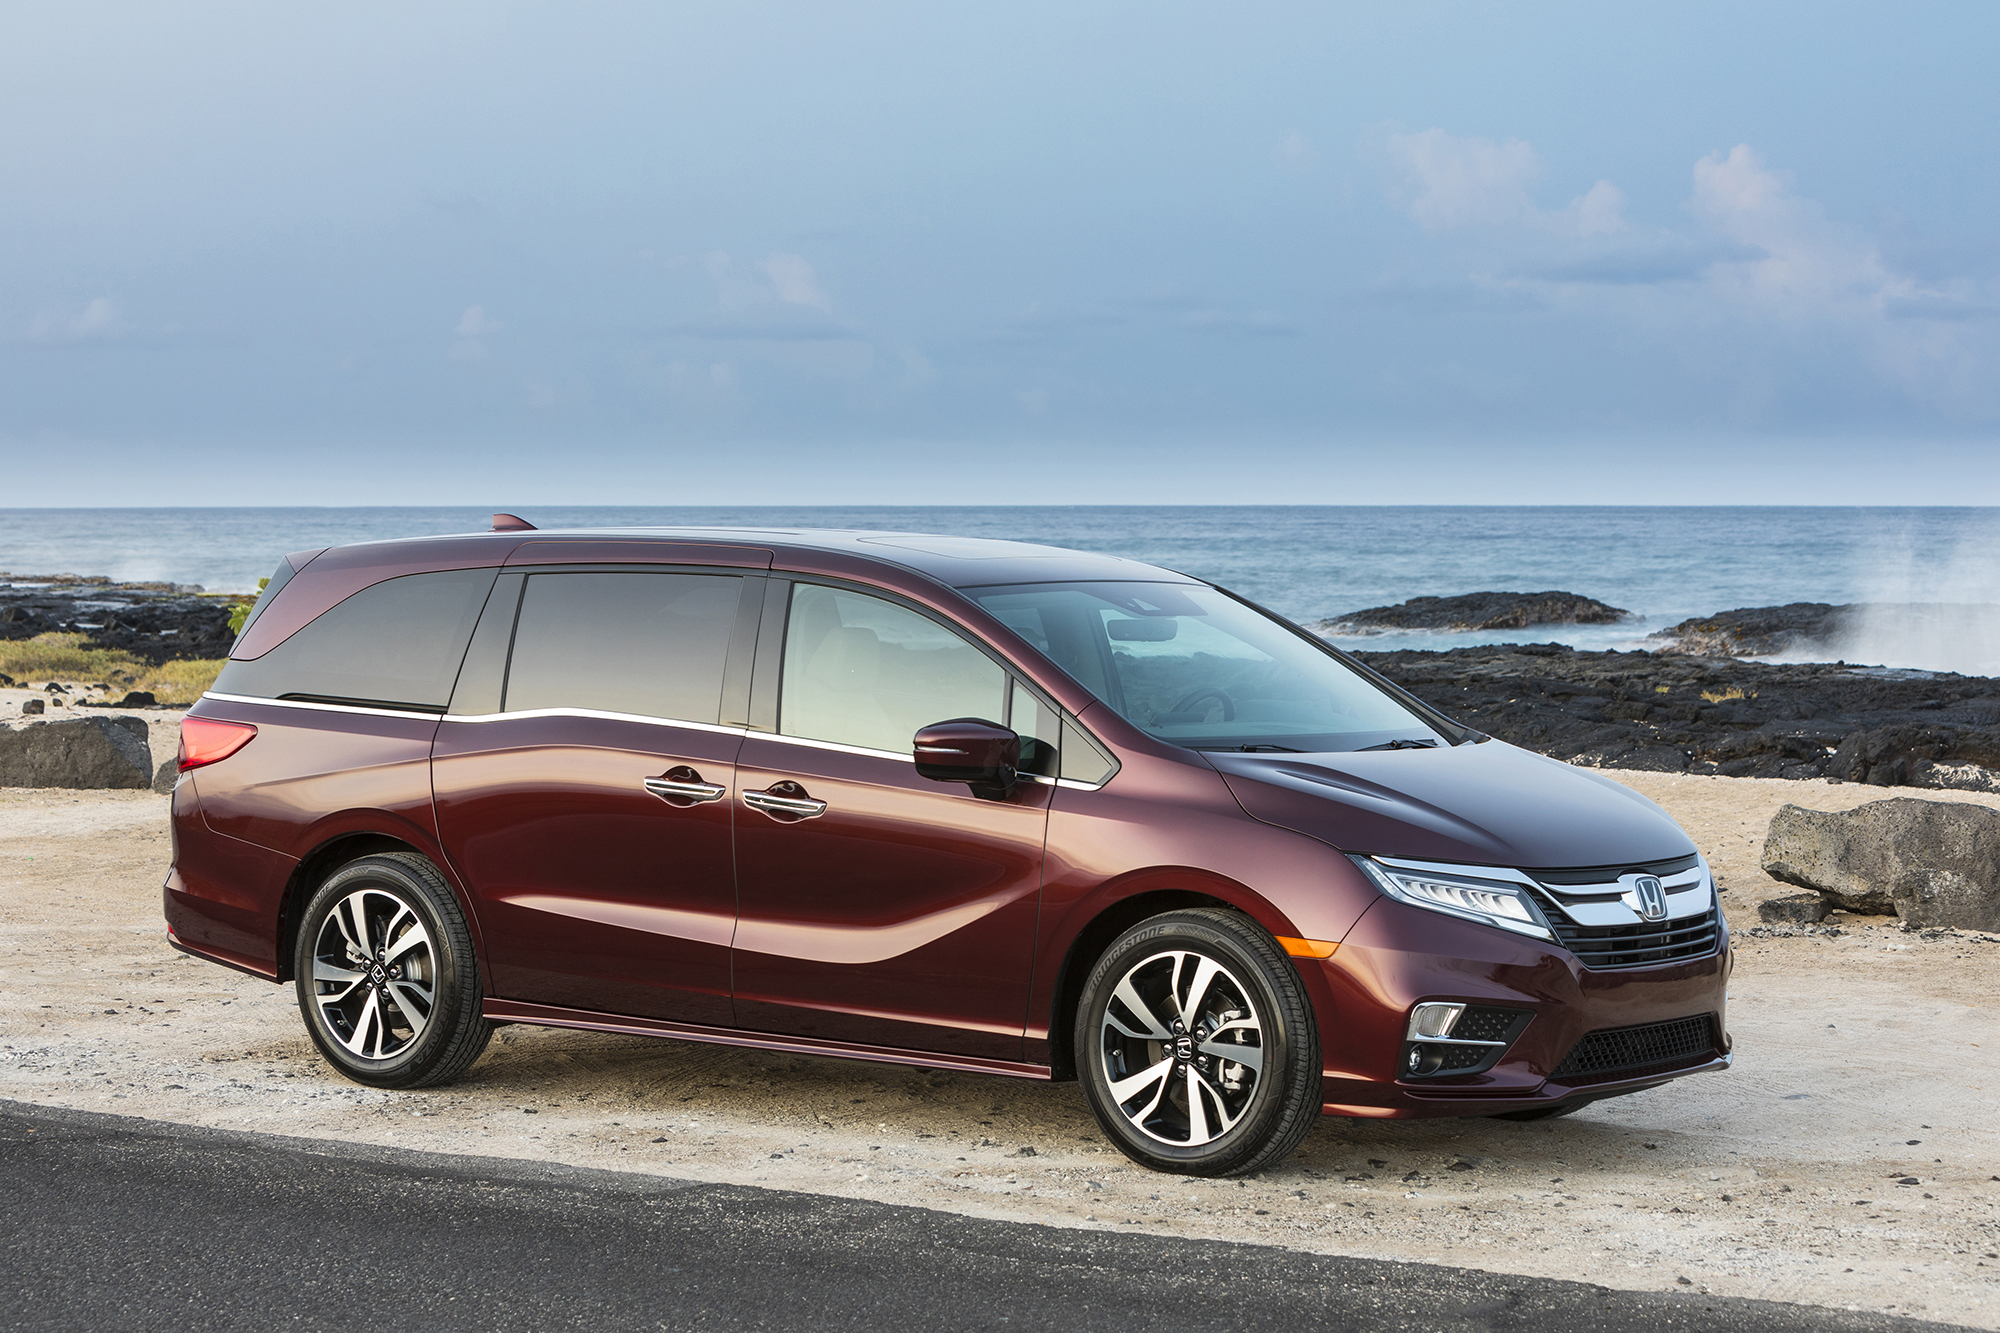 2020 Honda Odyssey Celebrates 25th Birthday With Transmission Upgrade (and Hopefully Cake)